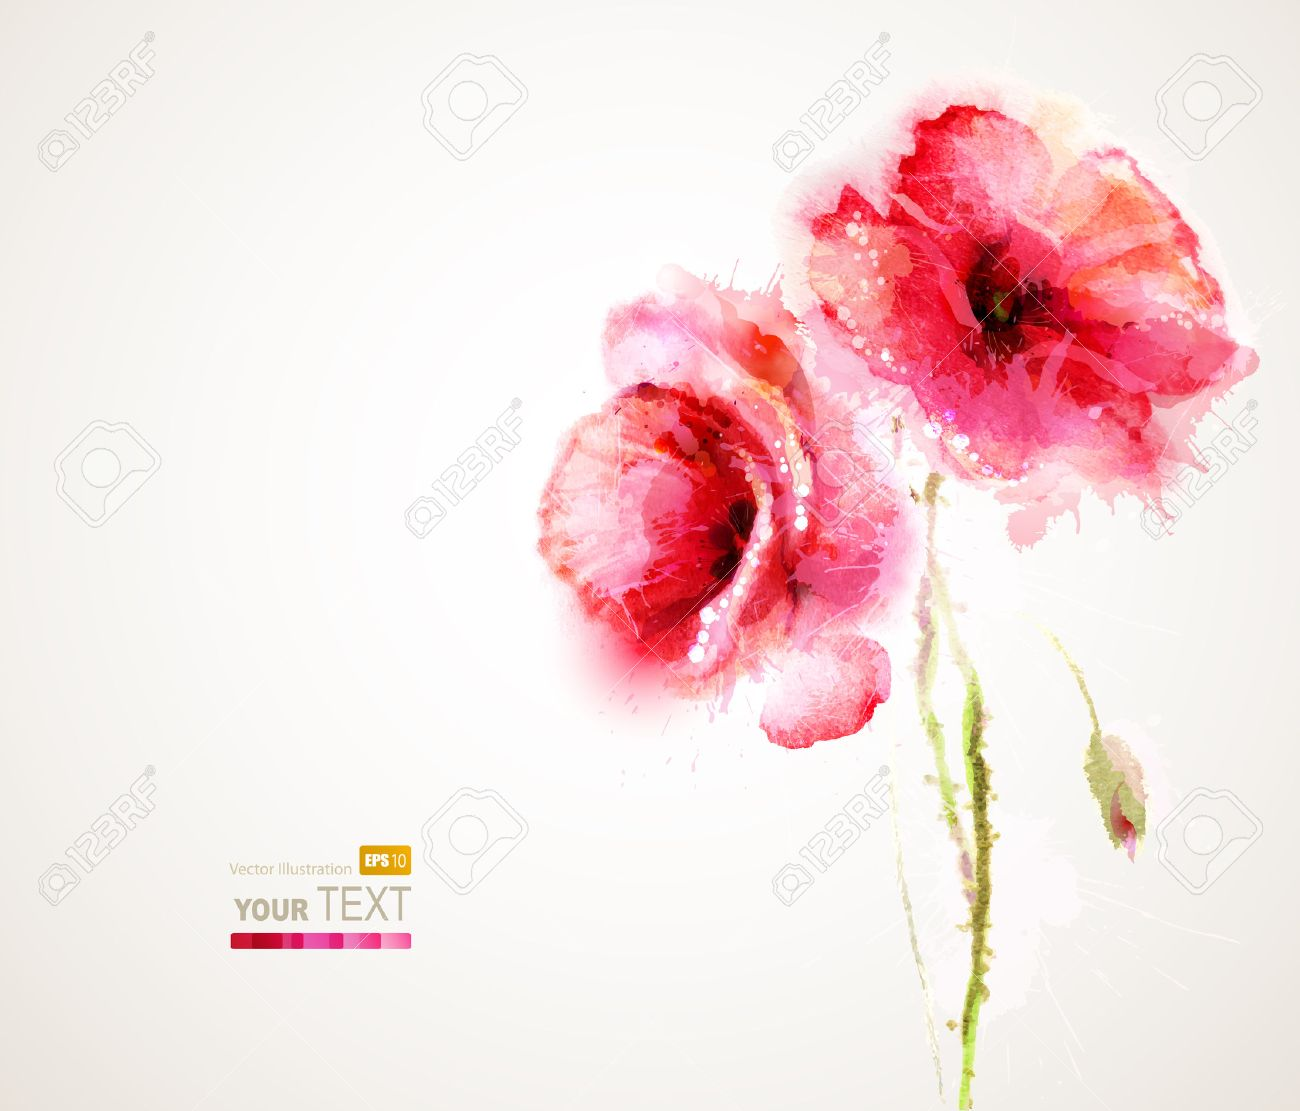 The two flowering red poppies Stock Vector - 25161446